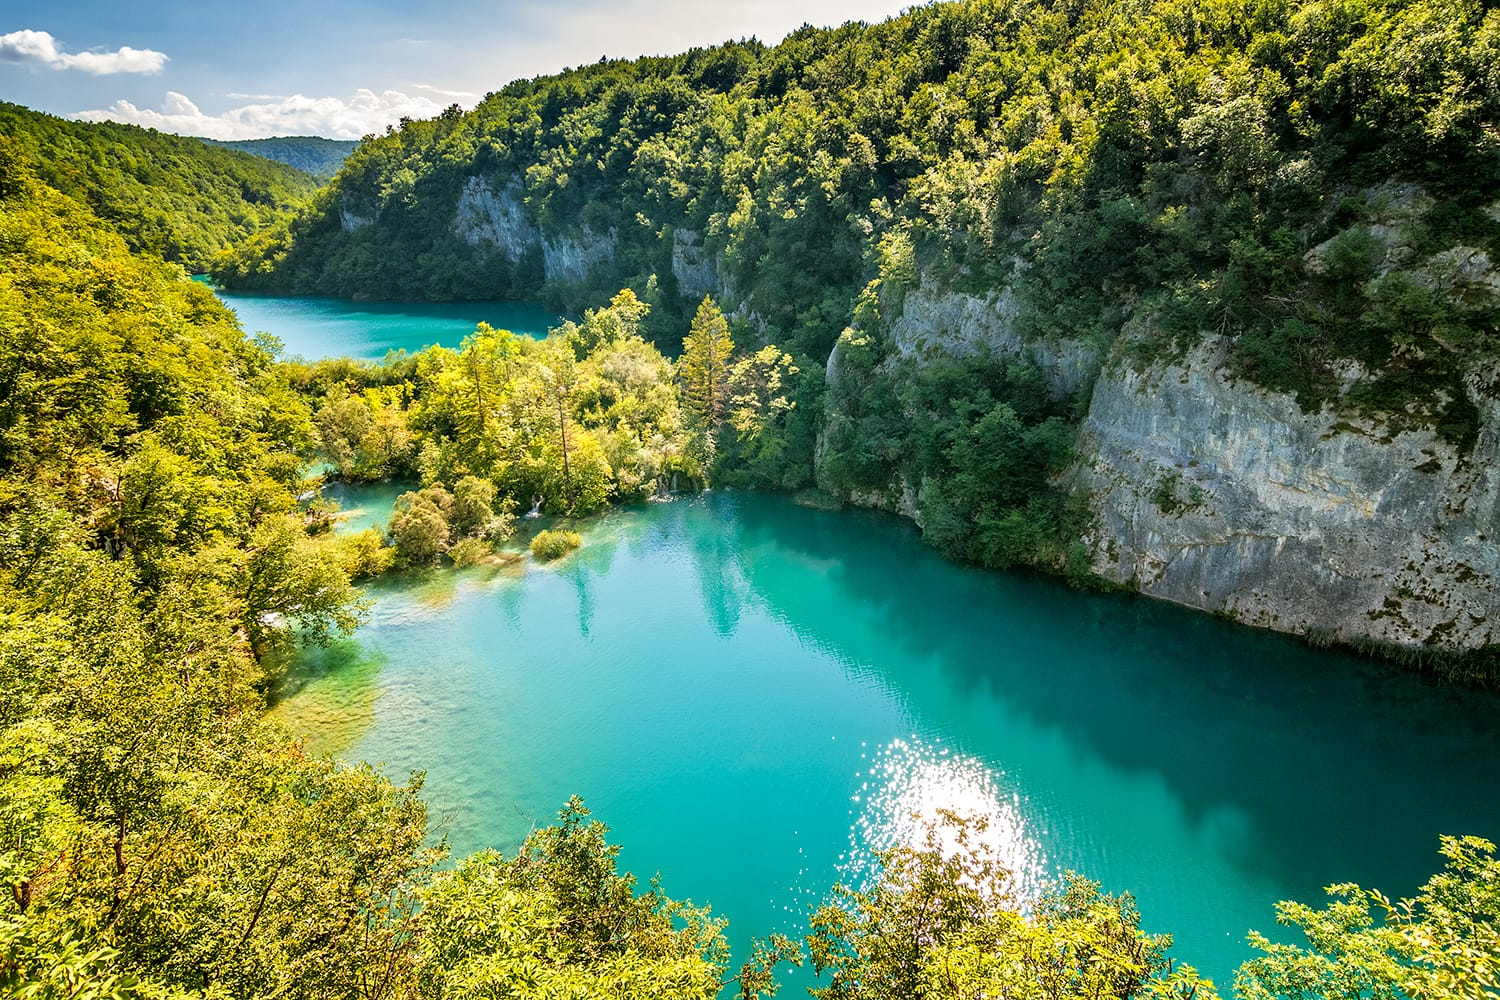 Breathtaking view of the Plitvice Lakes National Park in Croatia